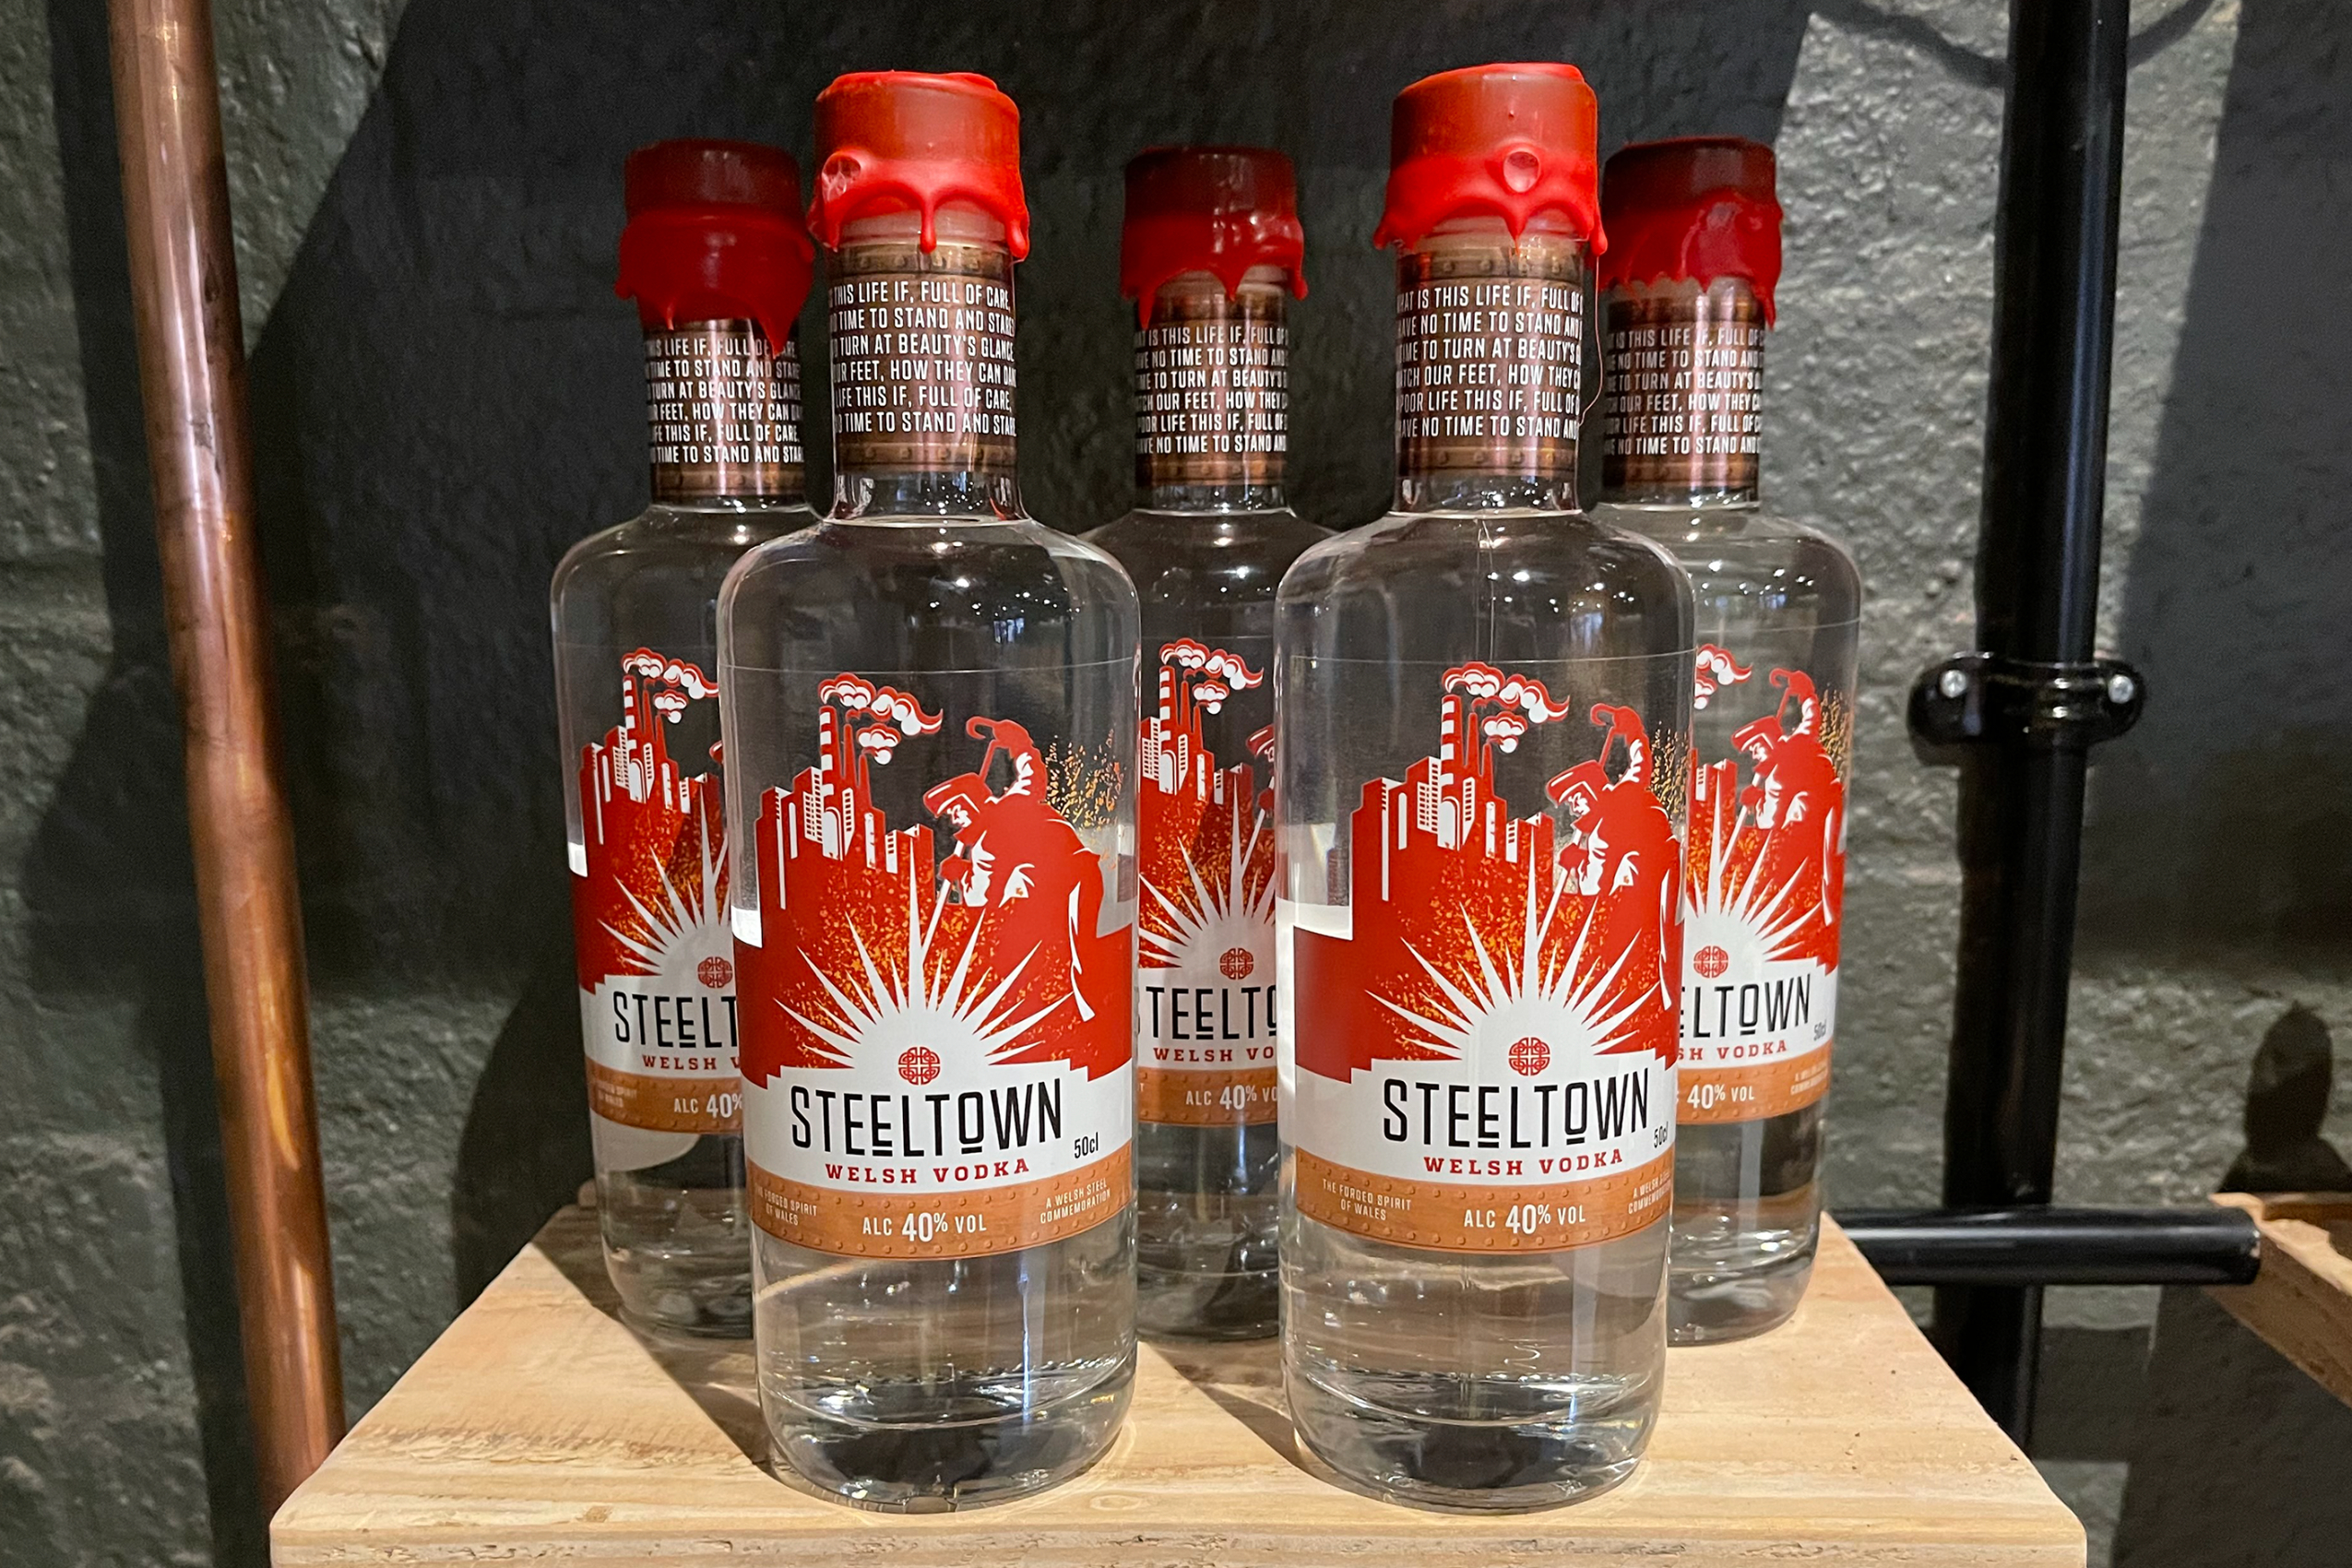 Steeltown Welsh Vodka Filtered Through Anthracite for a Crisp, Clean Flavour from the Spirit of Wales Distillery in Newport, South Wales